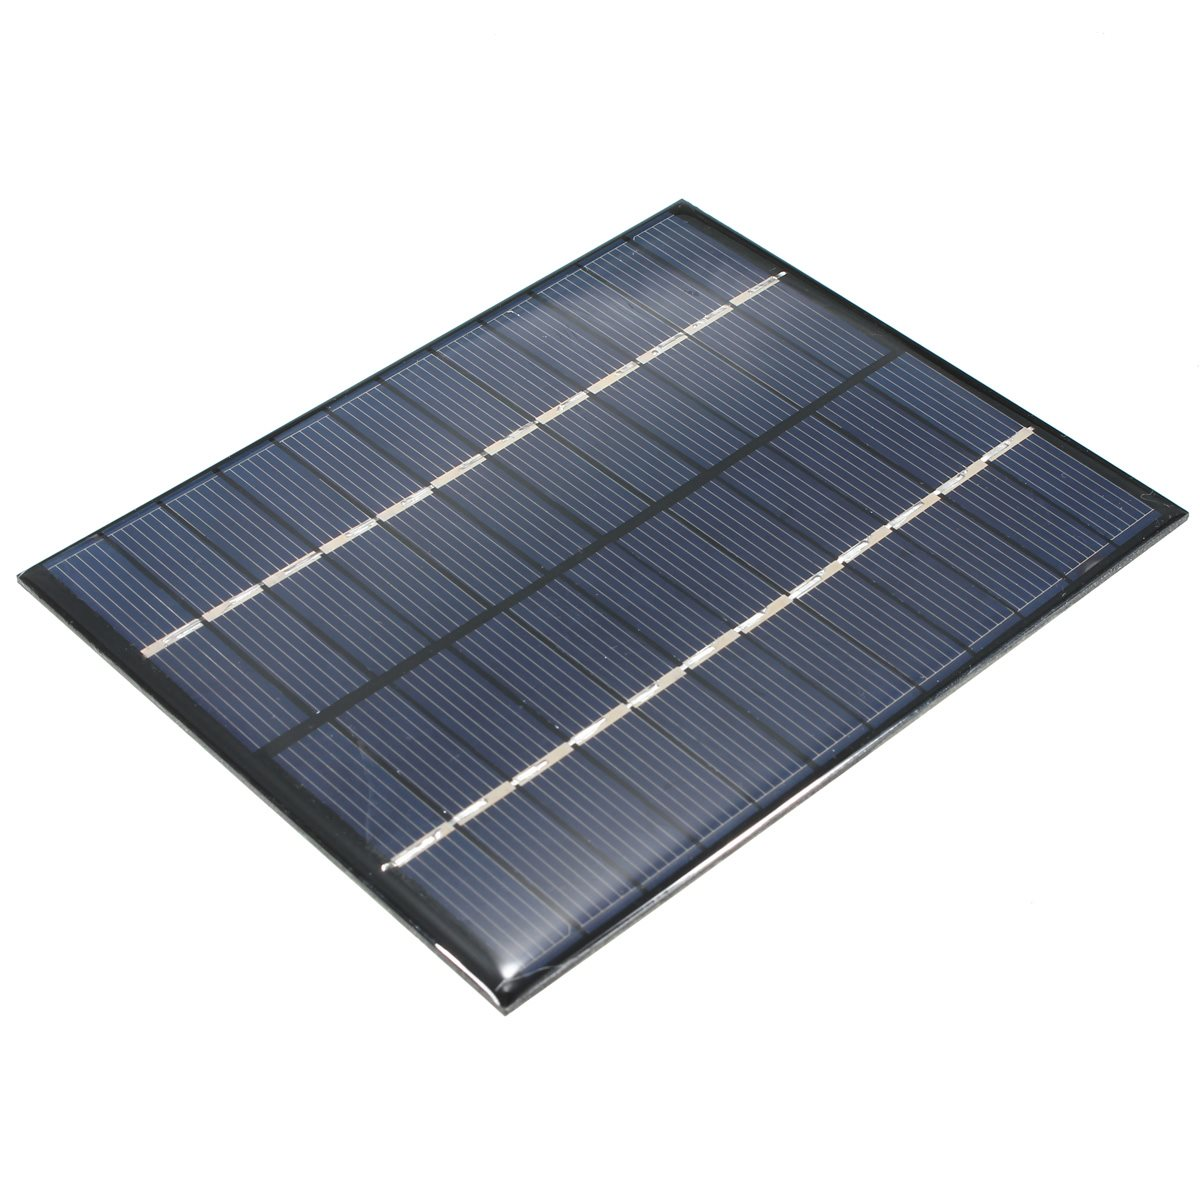 High Quality 12V 2W 160mA Polycrystalline Silicon Solar Panel Module Cells universal for Phones Charger DC Battery DIY 136x110mm